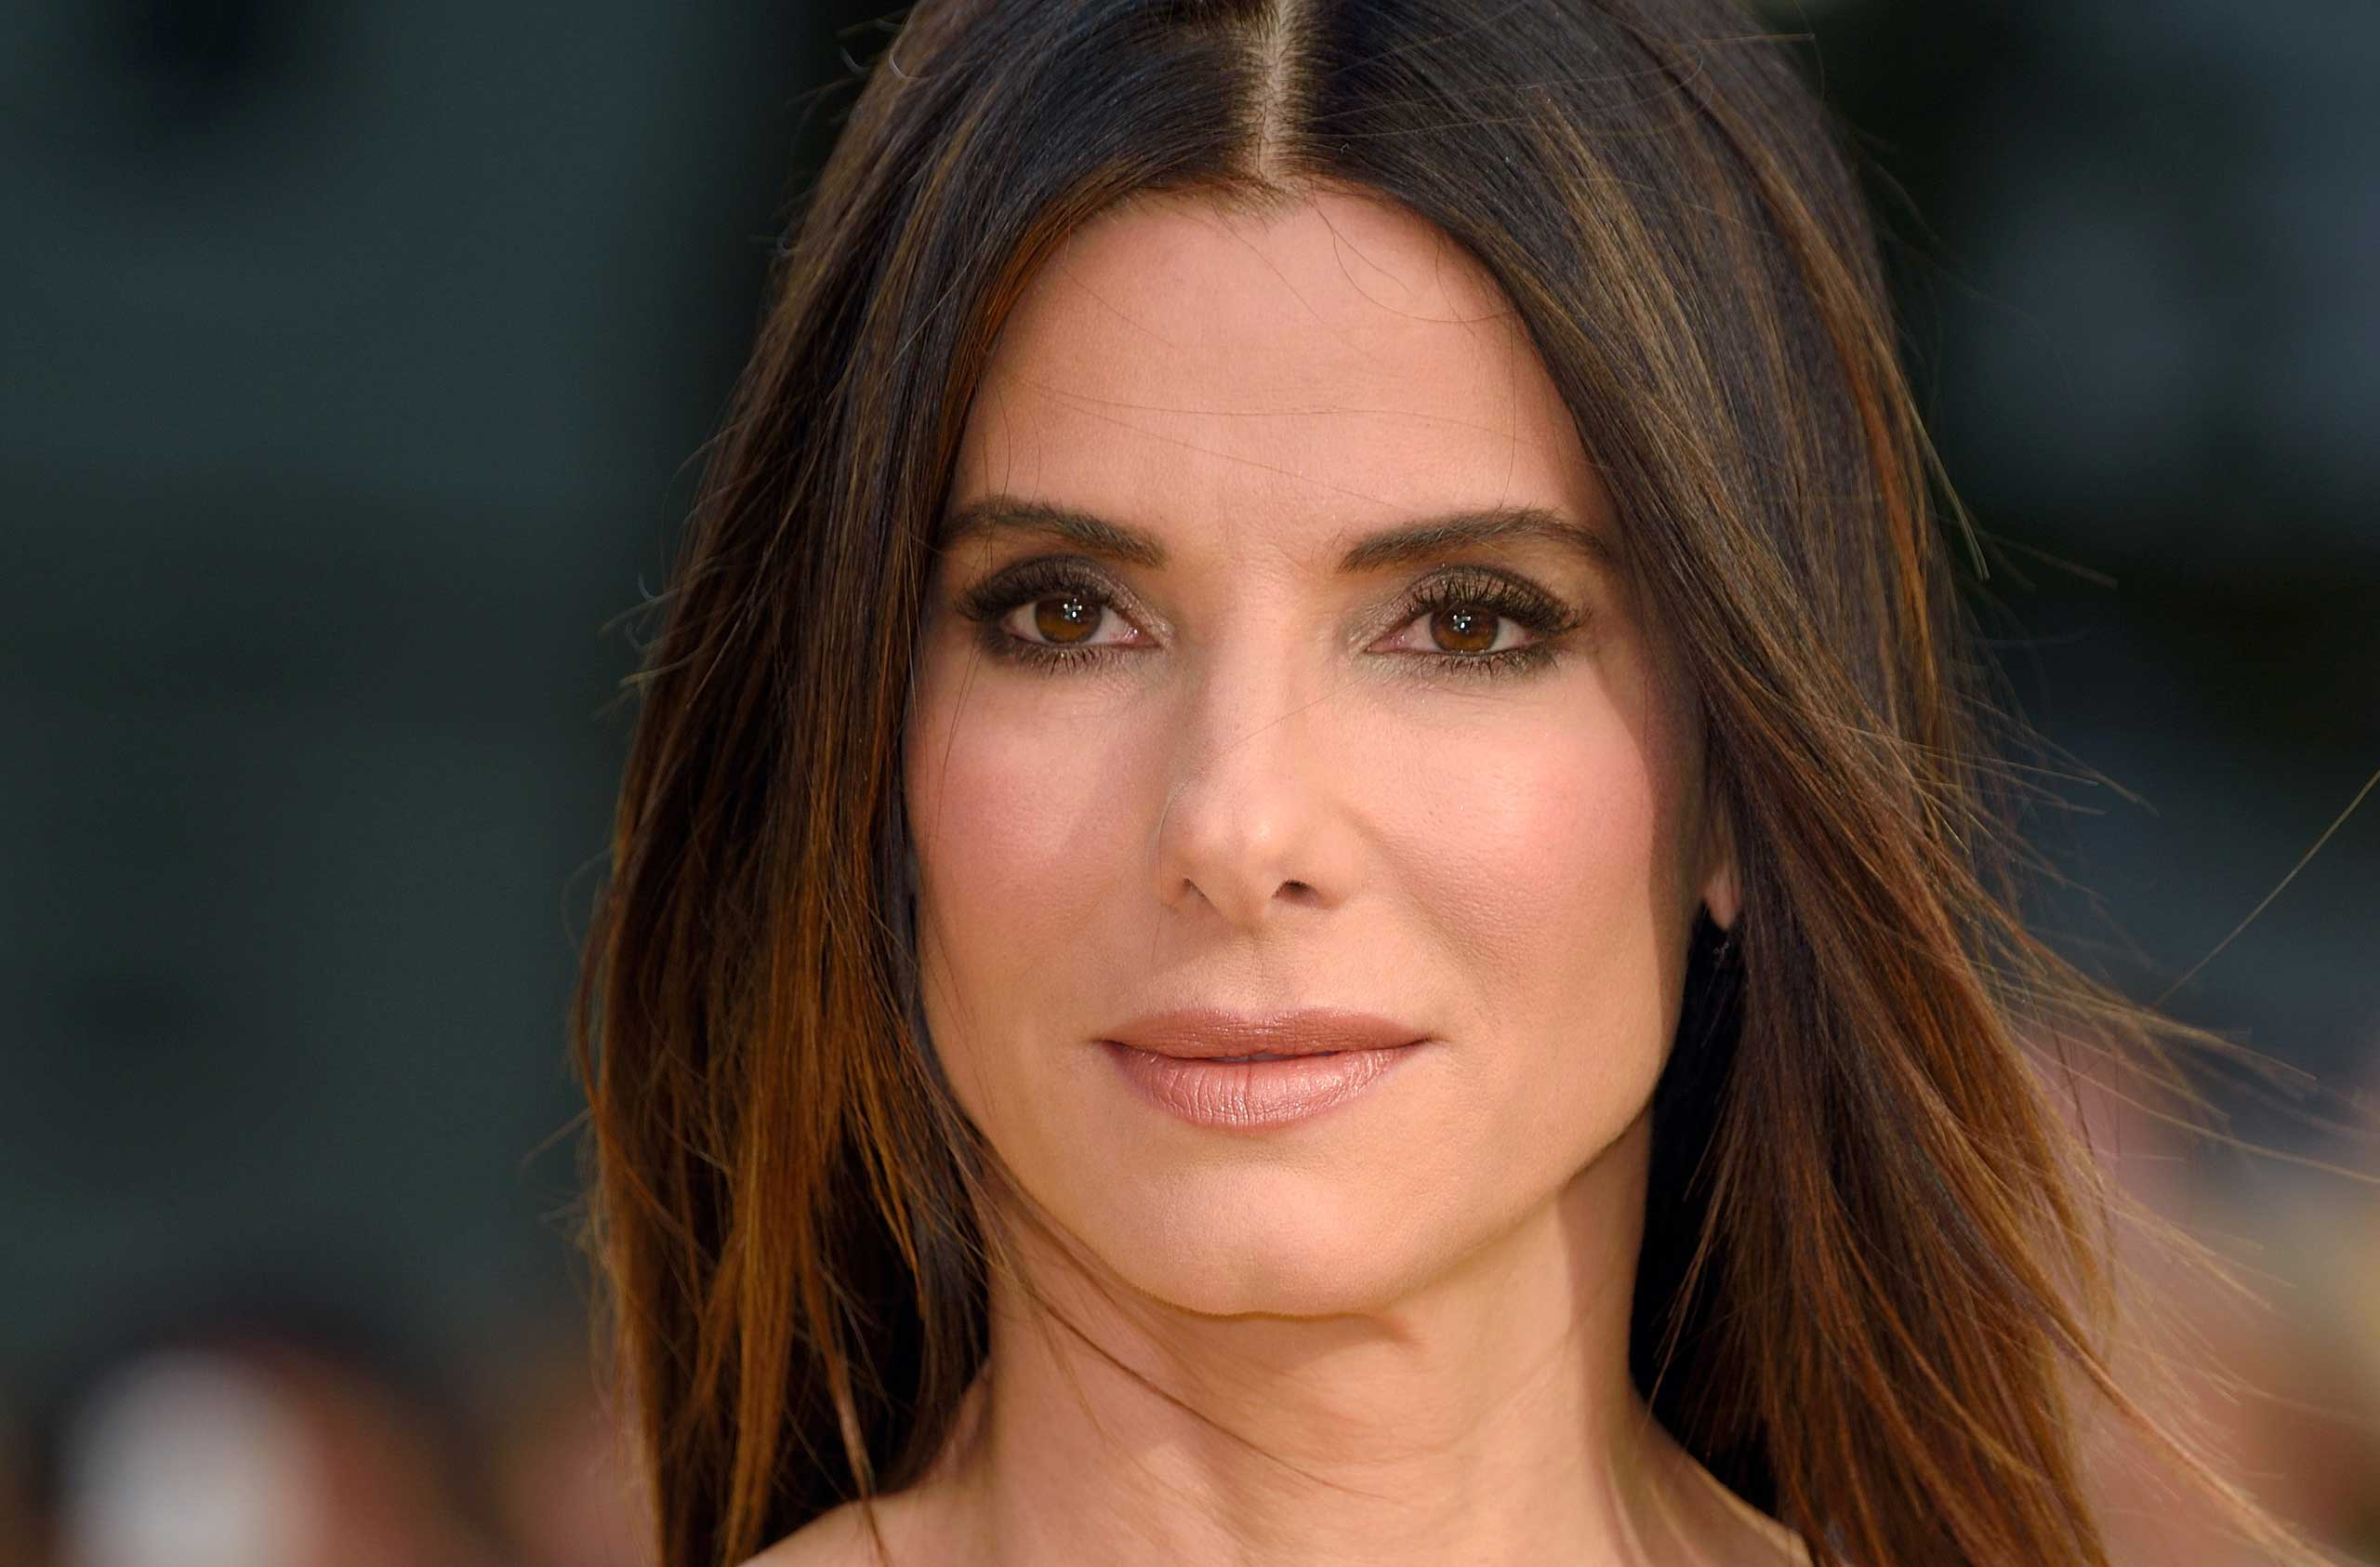 Sandra Bullock attends the World Premiere of  Minions  at Odeon Leicester Square in London on June 11, 2015.